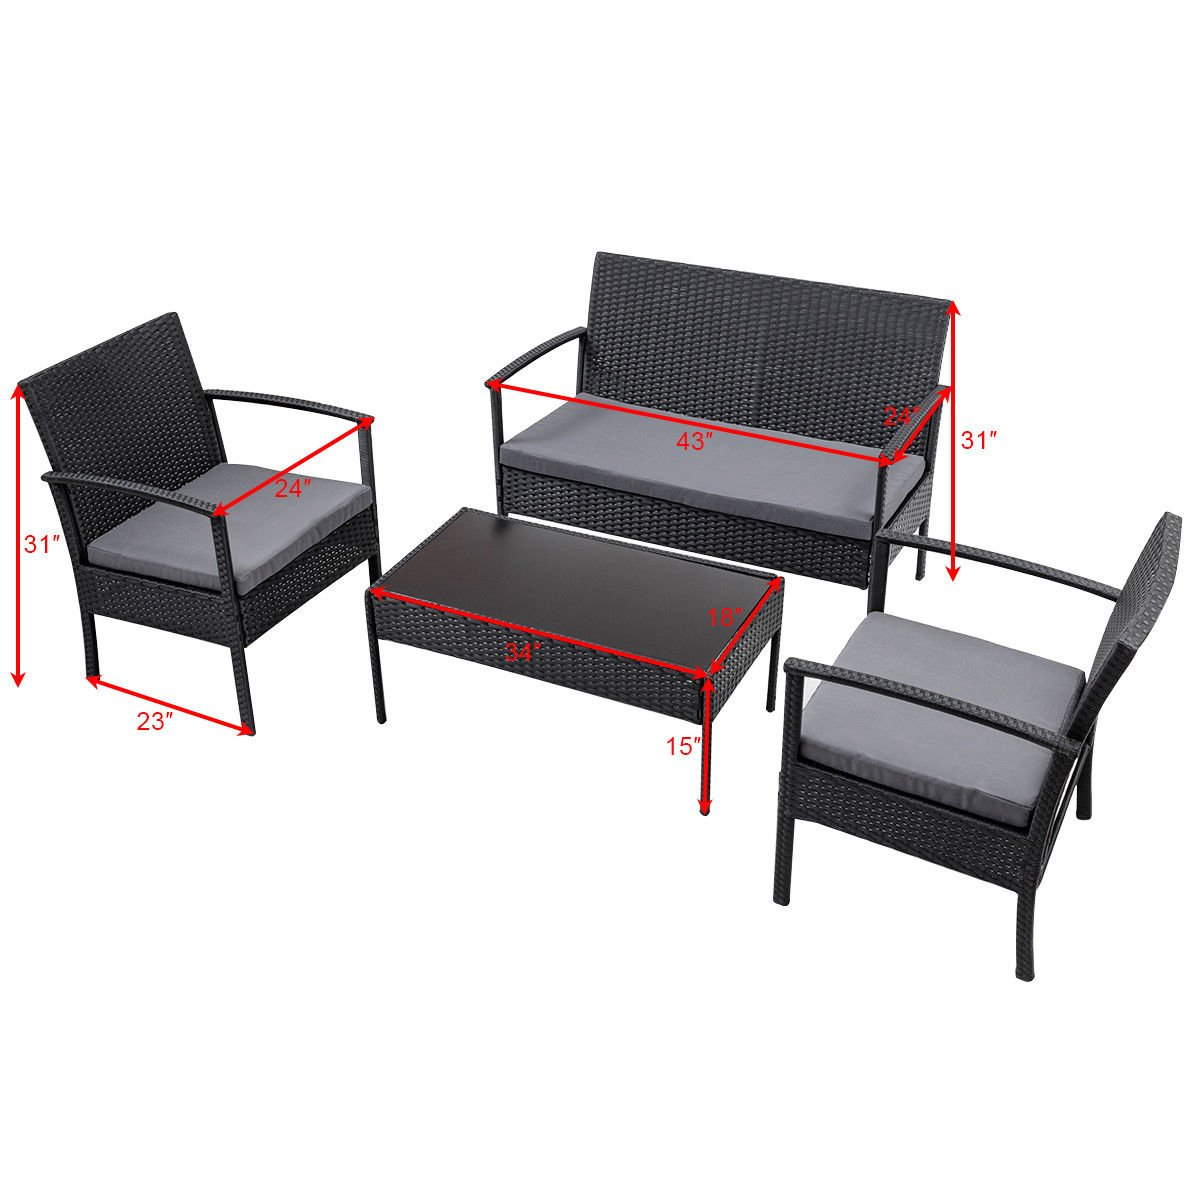 ANA Store Black Wicker Yard Meeting Seat Set of 4 Pcs Rectangle Body Tempered Glass Top Bar Sofa Side Table with Mattress Lounge 2 Cushion Backrest Ottoman 4 Piece Stylish Rattan Outdoor Chat Seating